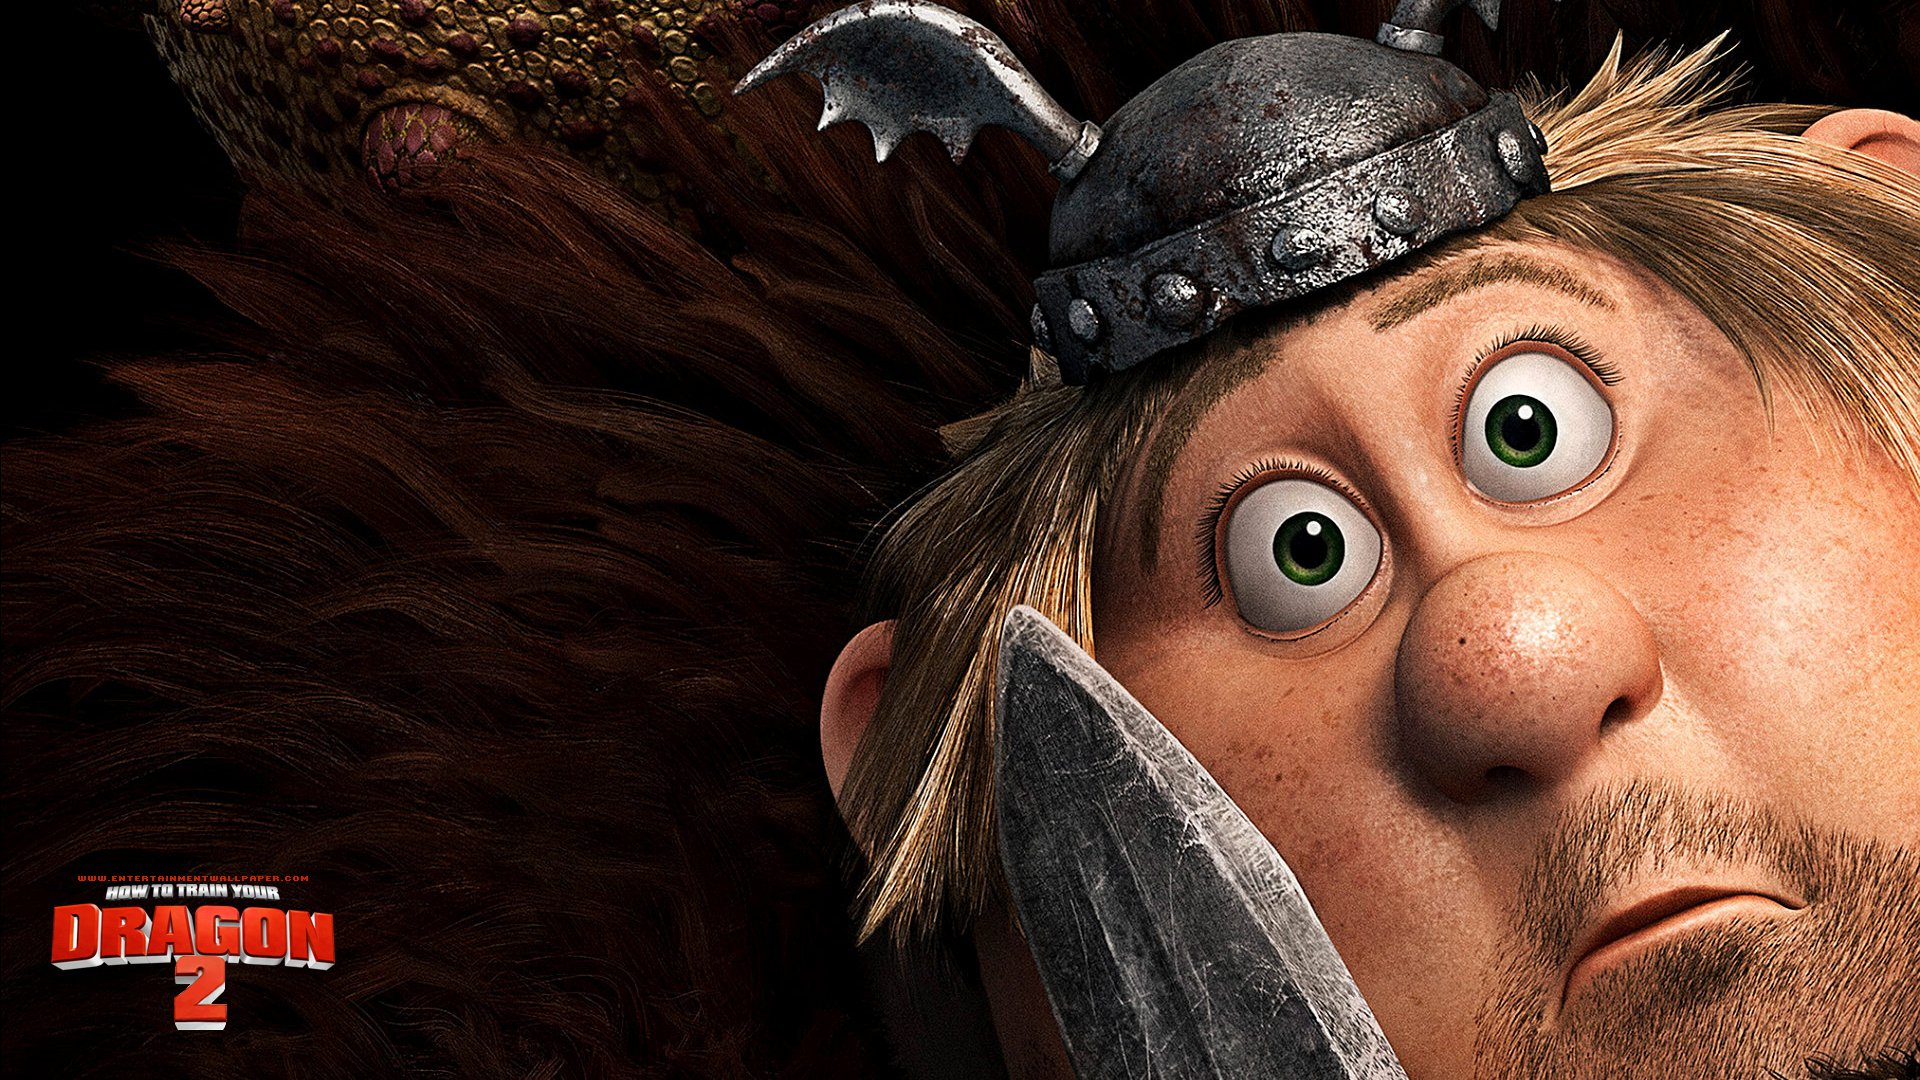 How to train your dragon 2 wallpaper high definition high how to train your dragon 2 ccuart Choice Image